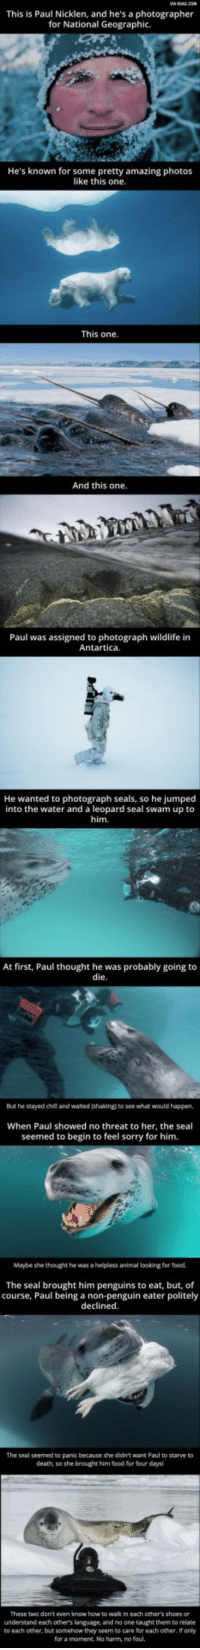 Food, Shoes, and Sorry: This is Paul Nicklen, and he's a photographer  for National Geographic.  He's known for some pretty amazing photos  like this one  This one  And this one.  Paul was assigned to photograph wildlife in  Antartica.  He wanted to  photograph seals, so he jumped  into the water and a leopard seal swam up to  him.  At first, Paul thought he was probably going to  die  But he stayed chil and waited (shaking) to see what would happen,  When Paul showed no threat to her, the seal  seemed to begin to feel sorry for him.  Maybe she thought he was a helpless animal looking for food.  The seal brought him penguins to eat, but, of  course, Paul being a non-penguin eater politely  declined.  The seal seemed to panic because she didn't want Paul to starve to  death, so she brought him food for four days  These two don't even know how to wak in each other's shoes or  understand each others language, and no one taught them to relate  to each other, but somehow they seem to care for each other, If only  for a moment. No harm, no foul. Just wanted to drop this to make y'all smile!